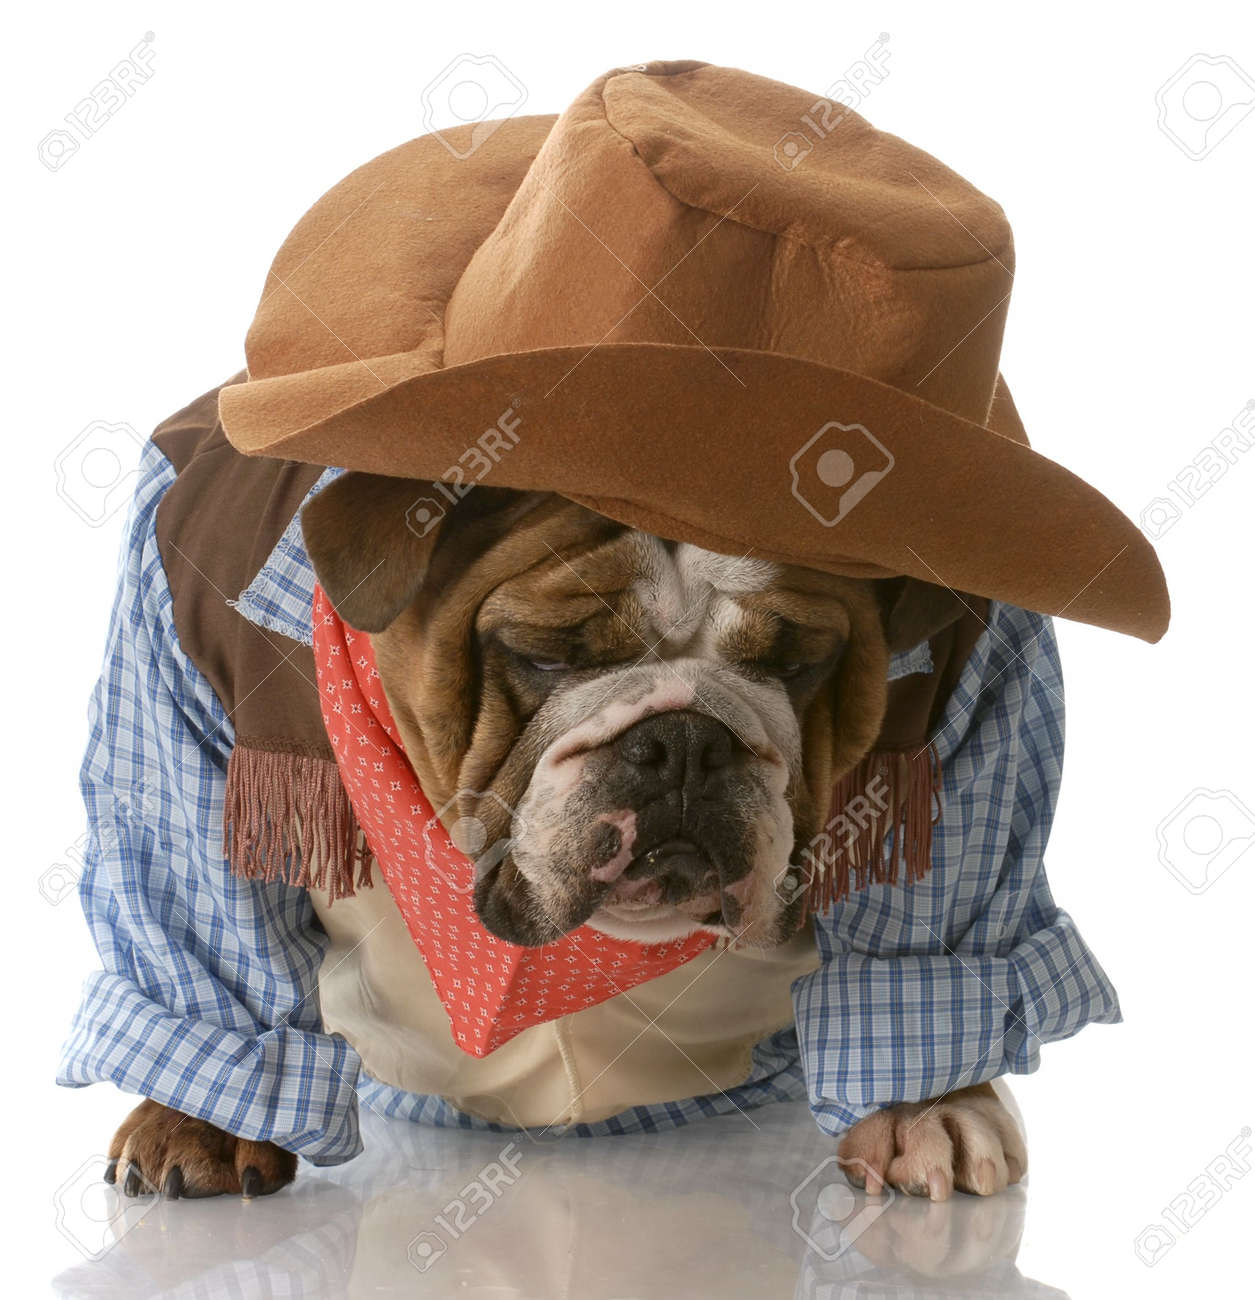 English Bulldog Dressed Up In Cowboy Costume With Depressed